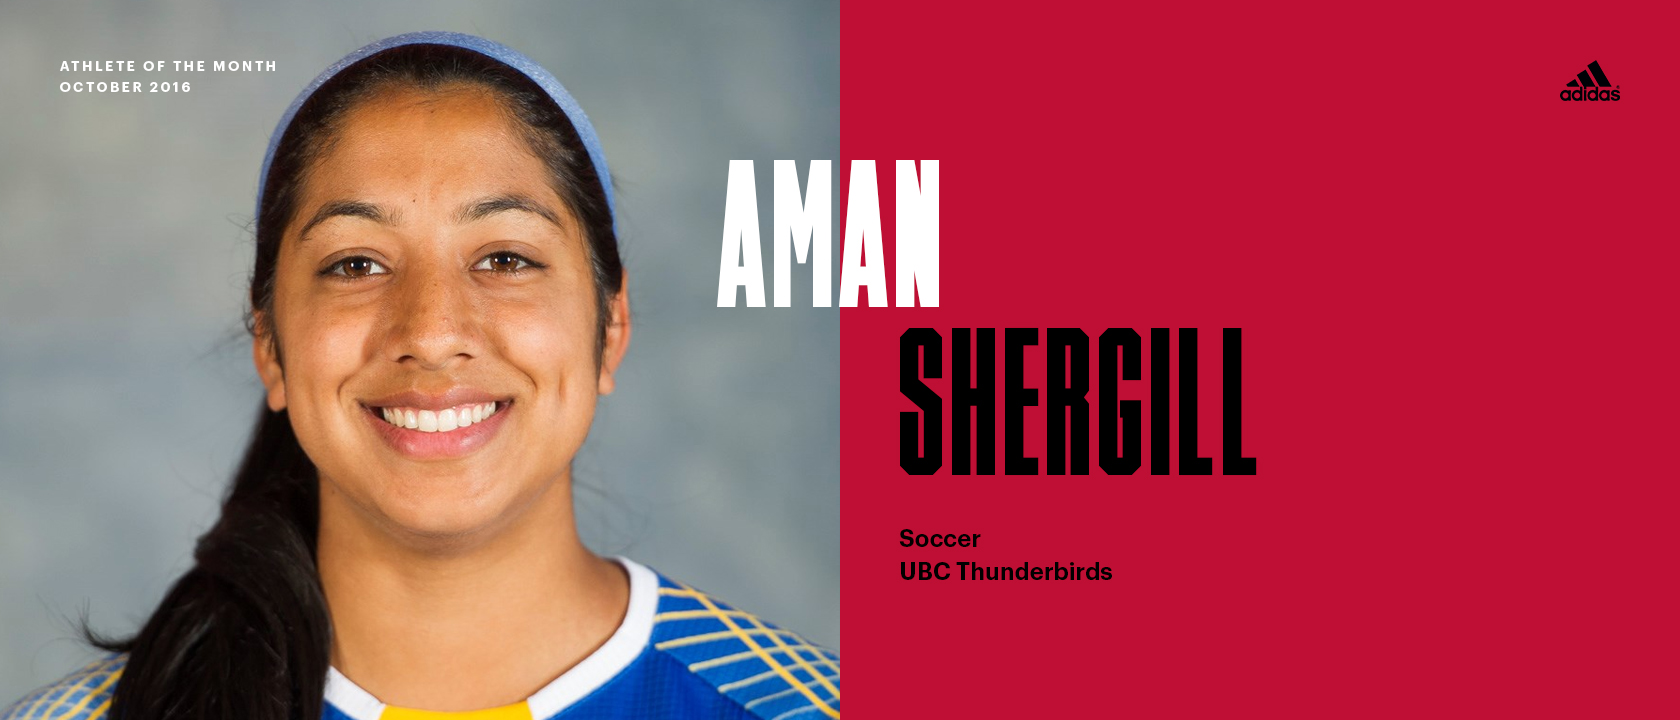 October: Aman Shergill